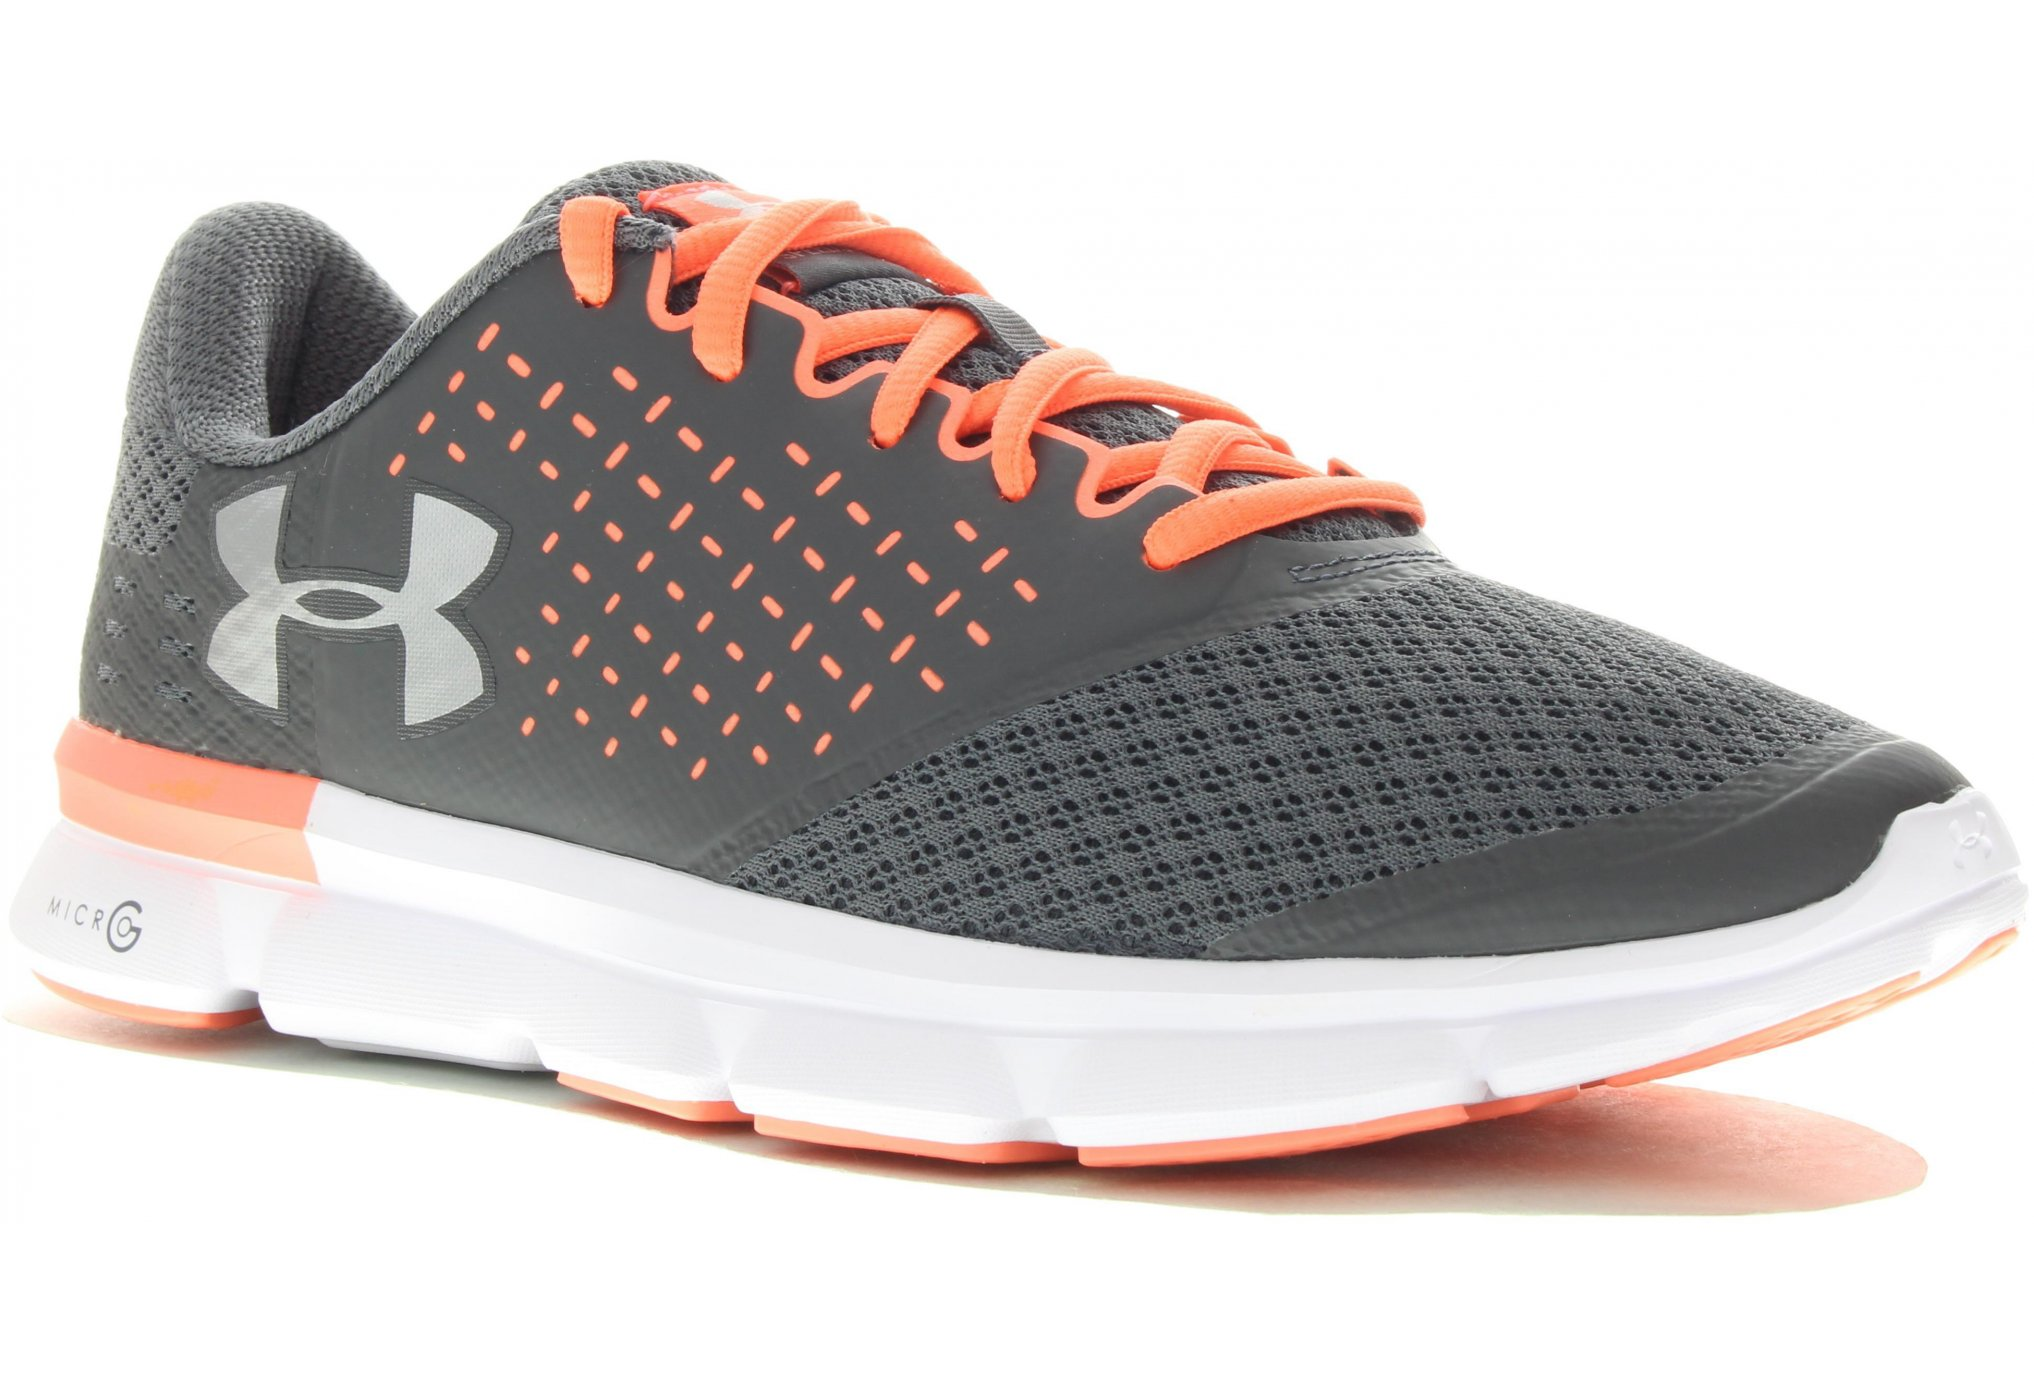 Under Armour Micro G Speed Swift 2 W Diététique Chaussures femme